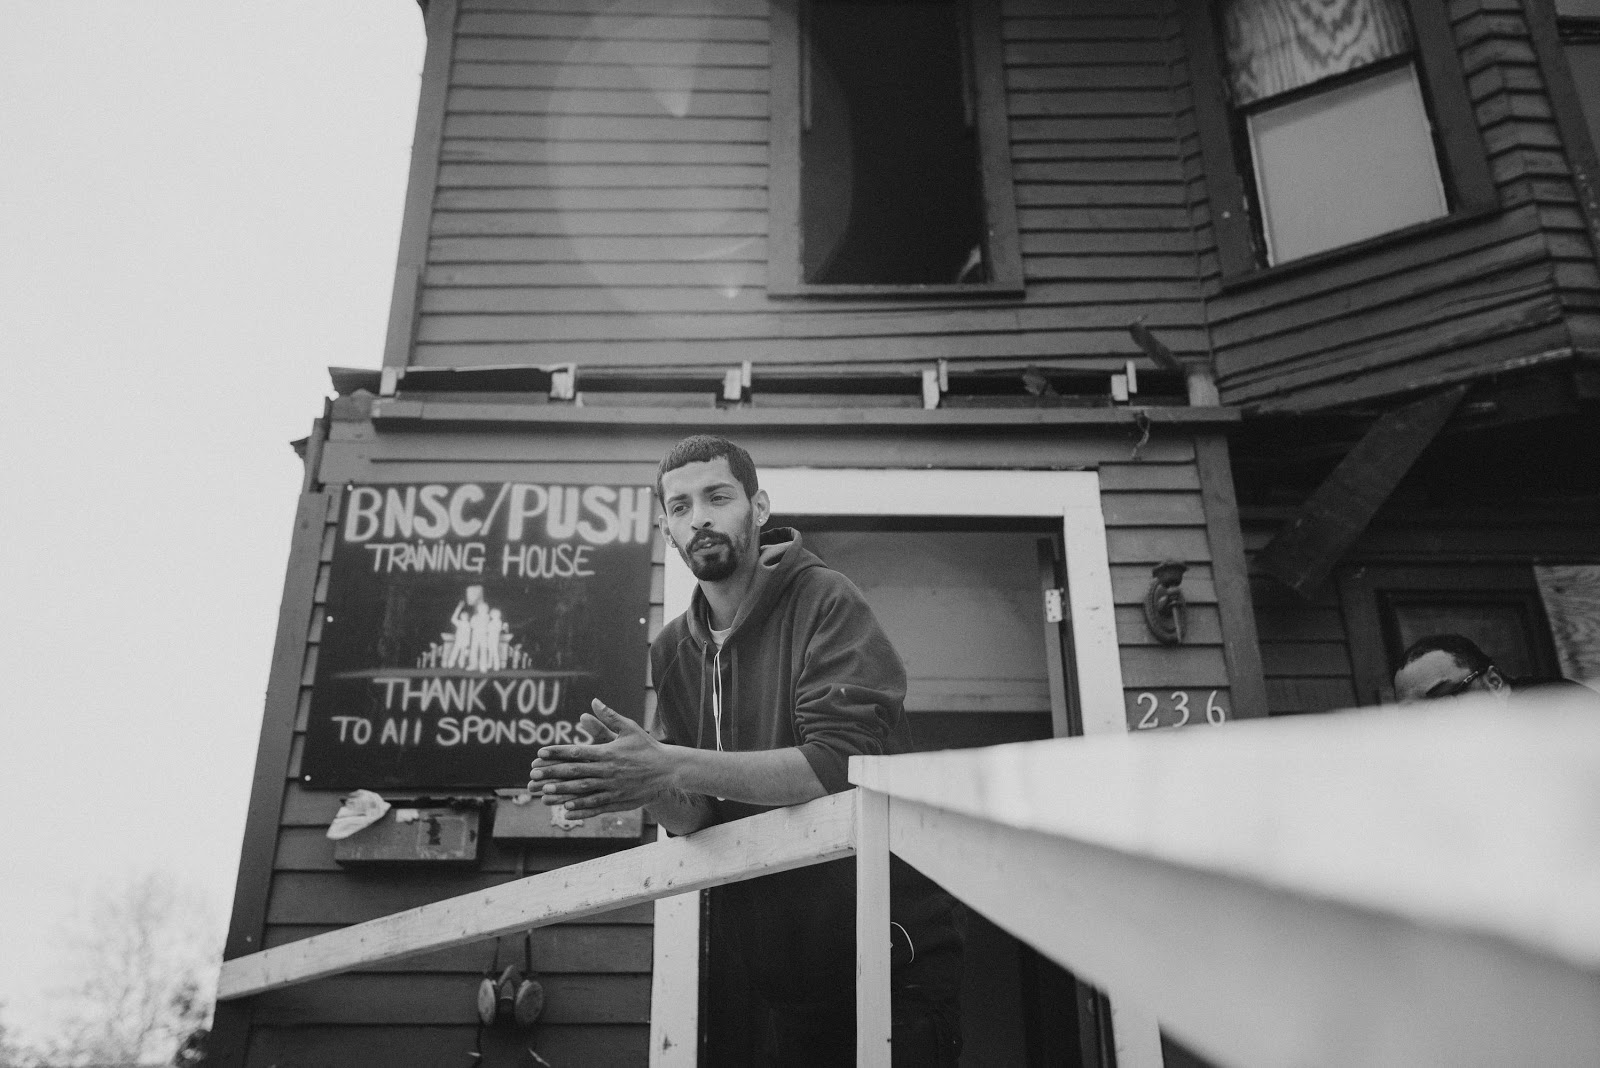 Image shows a person standing in from of the BNSC/PUSH Buffalo office